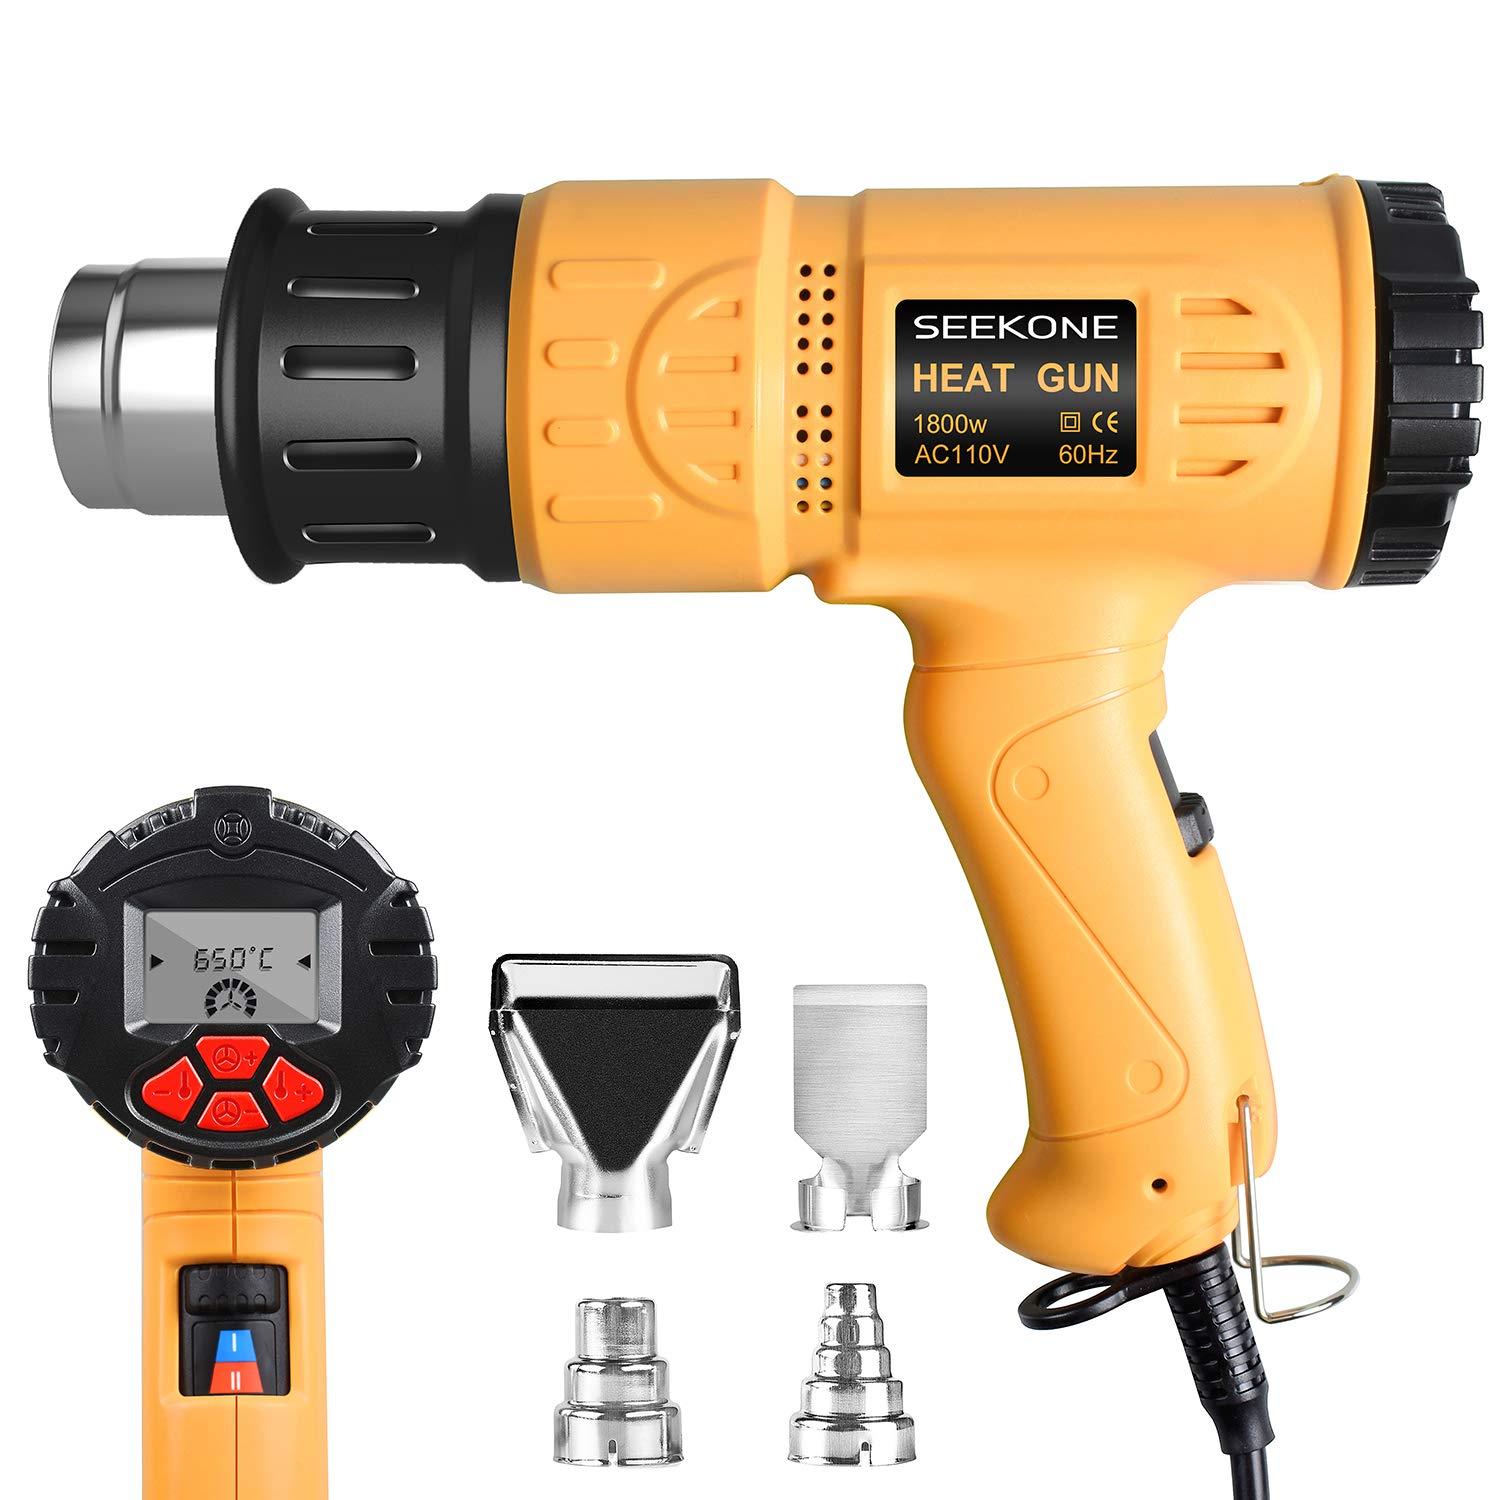 SEEKONE Heat Gun Industrial Hot Air Gun Kit 1800w 122℉~1202℉(50℃~650℃) with LCD Display Digital Precision Temperature Control, Dual Temp-settings for Removing Paint, Bending Pipes, Shrinking PVC